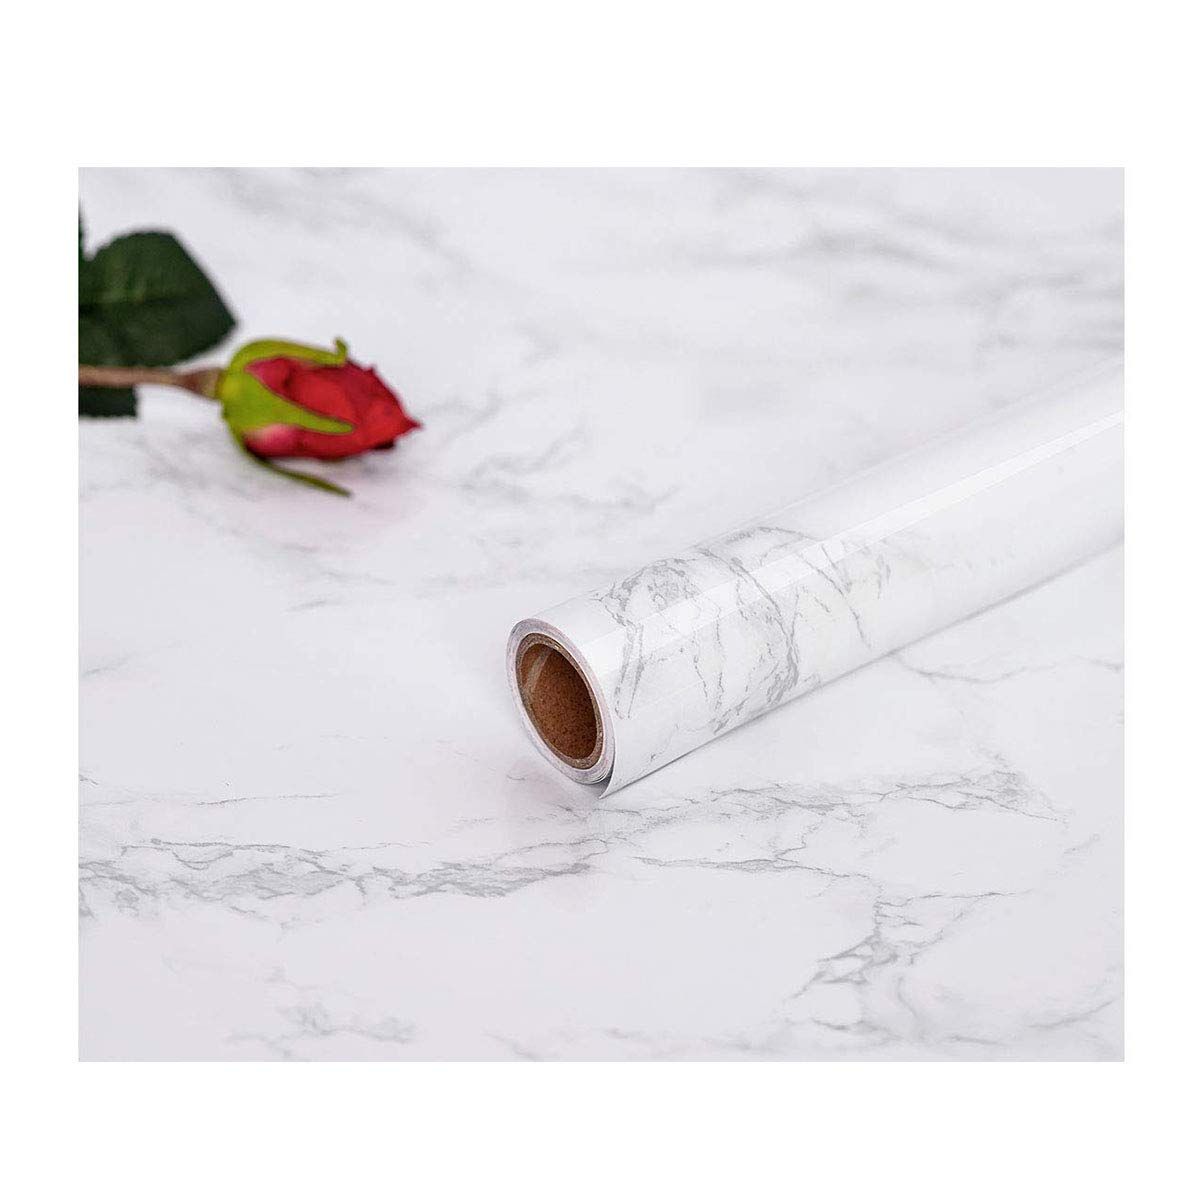 17.71X 79 Marble Contact Film Granite Look Effect Contact Paper Decorative Self-Adhesive Film Marble Gloss Vinyl Film Contact Paper for Furniture Abyssaly